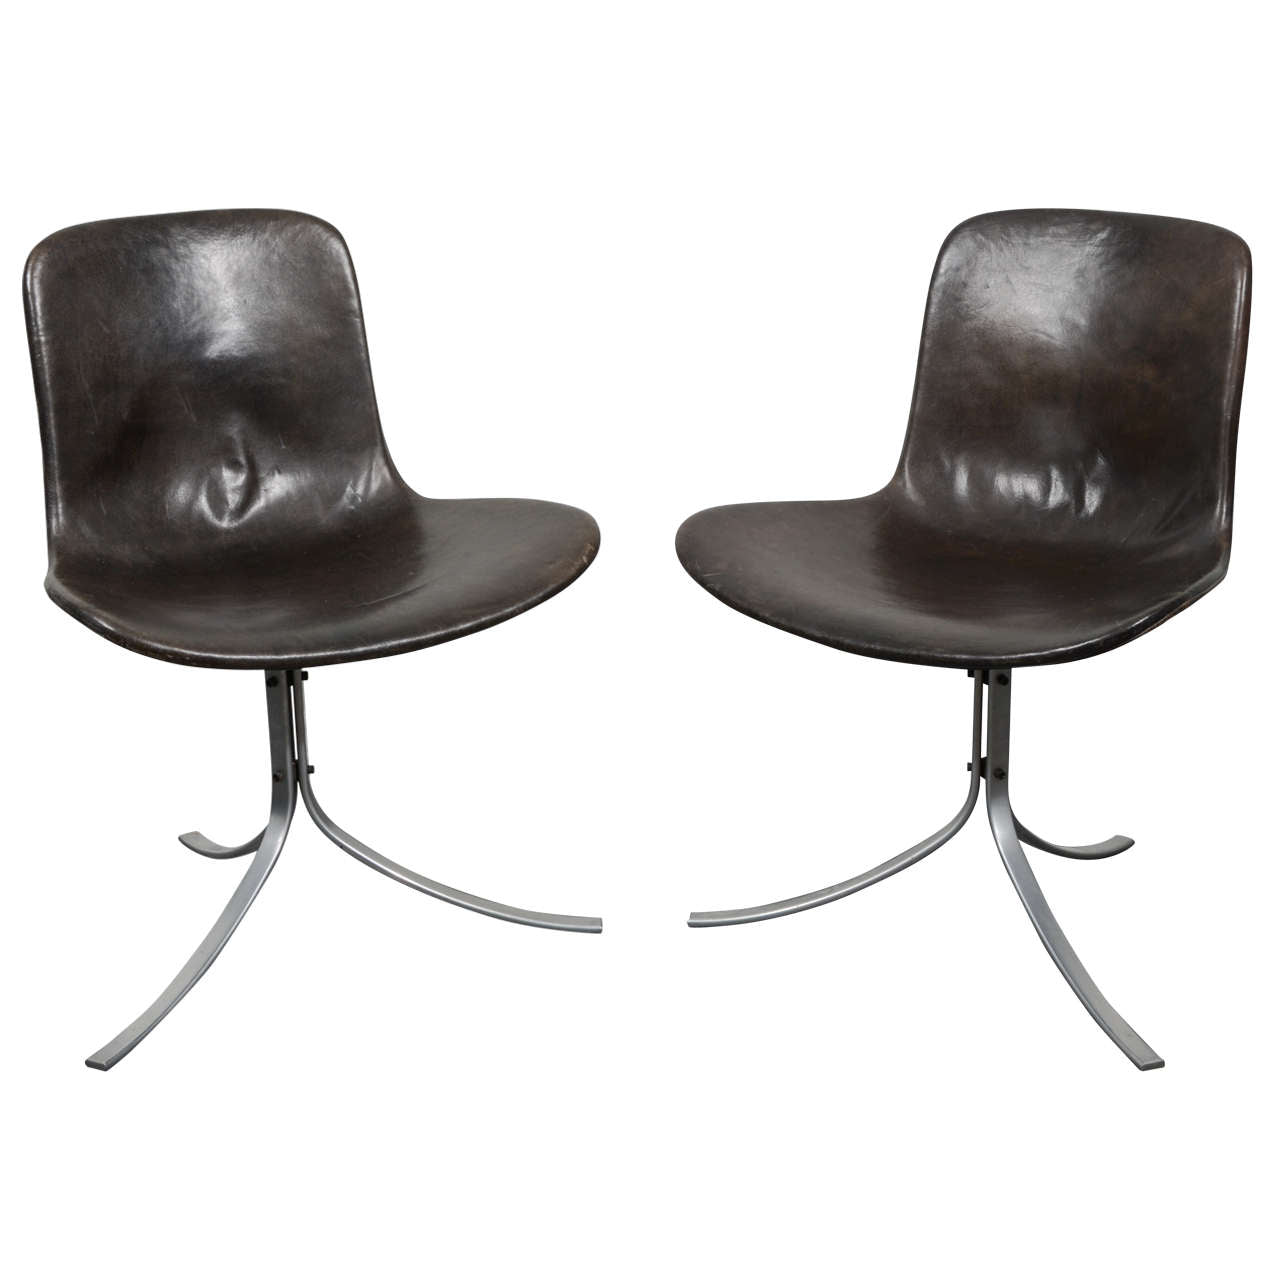 Poul Kjaerholm PK9 Chairs for E. Kold Christensen, Original Condition, 1960s - The Exchange Int